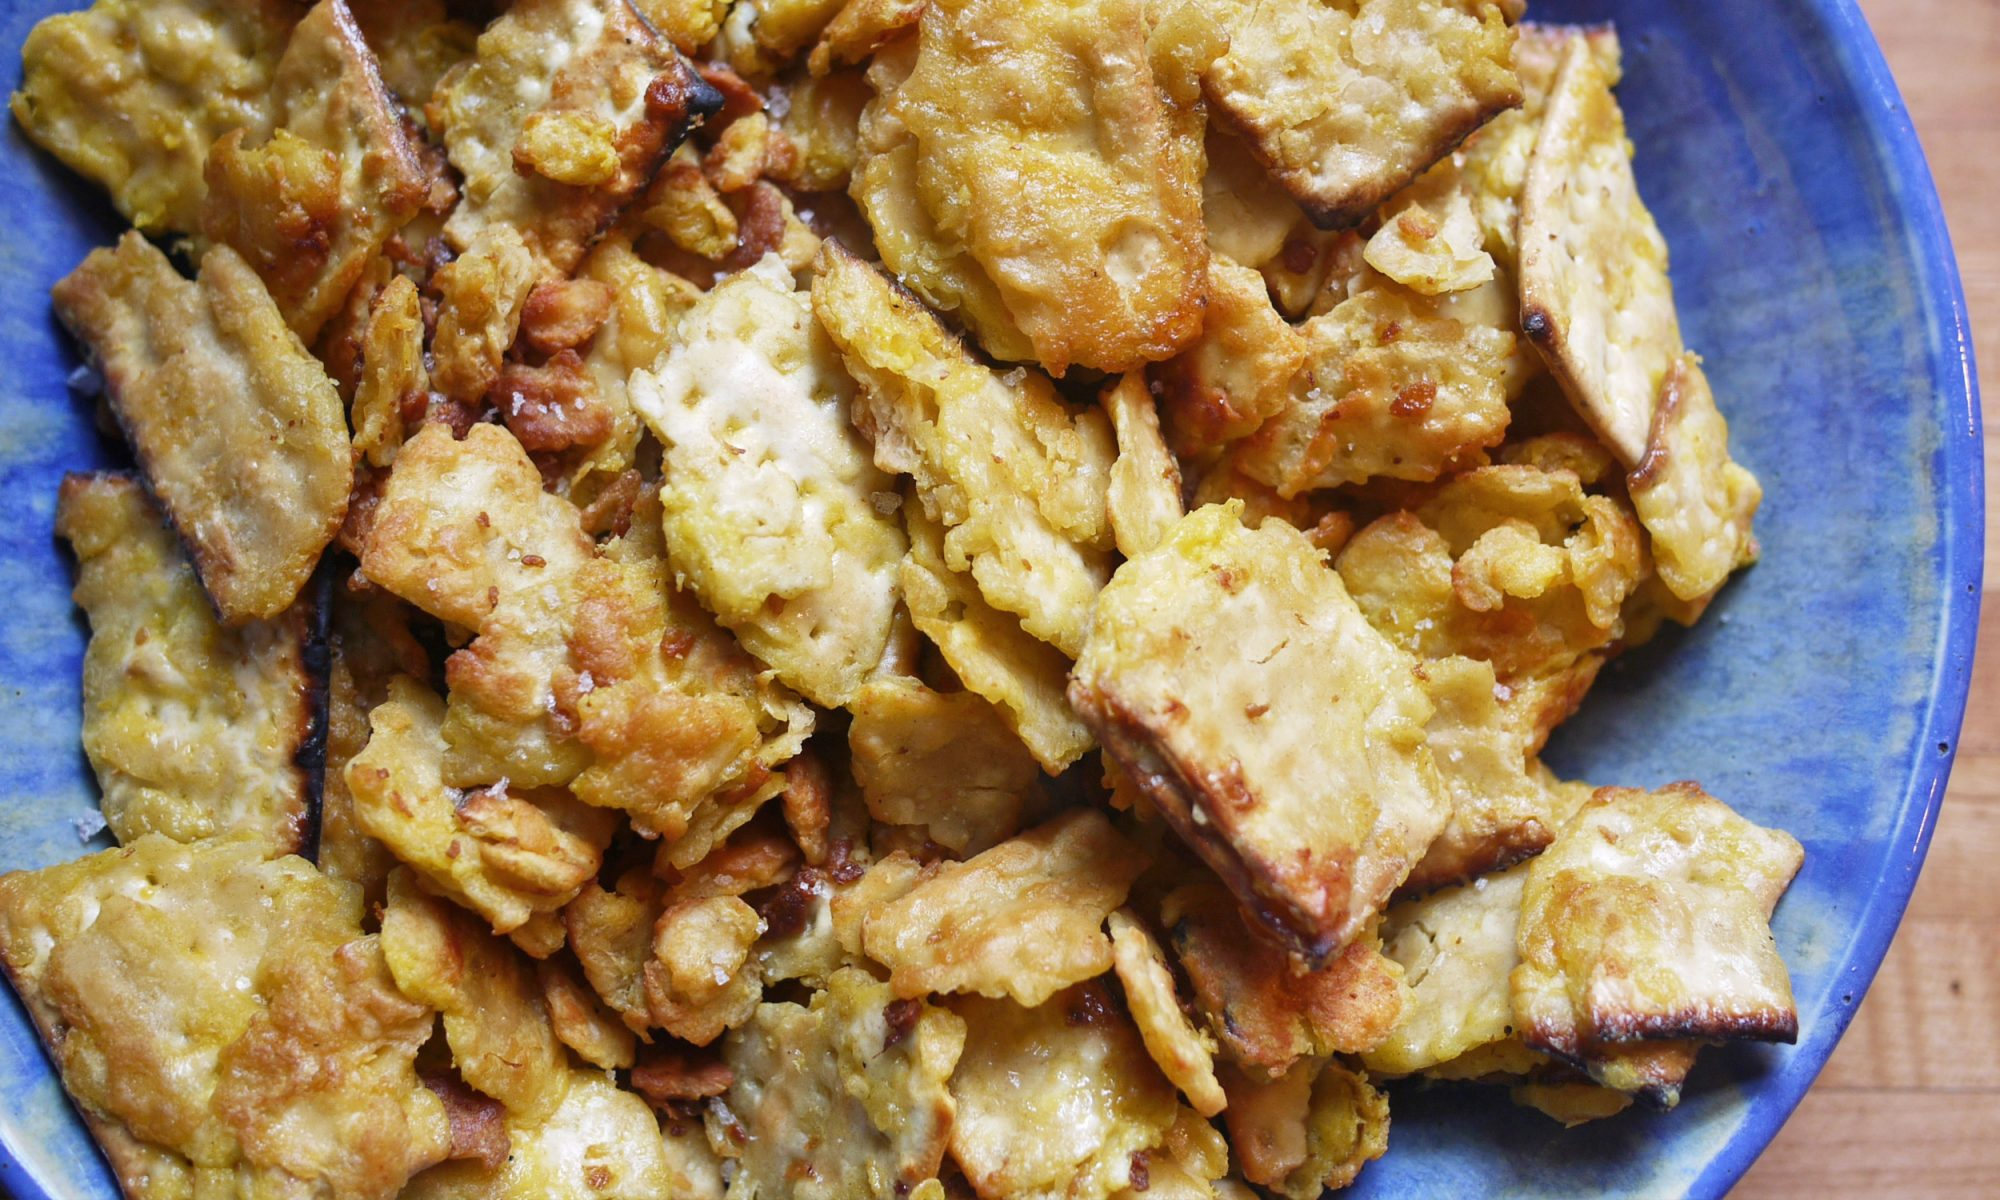 EC: Sweet or Savory, Matzo Brei Is a Mushy Passover Marvel